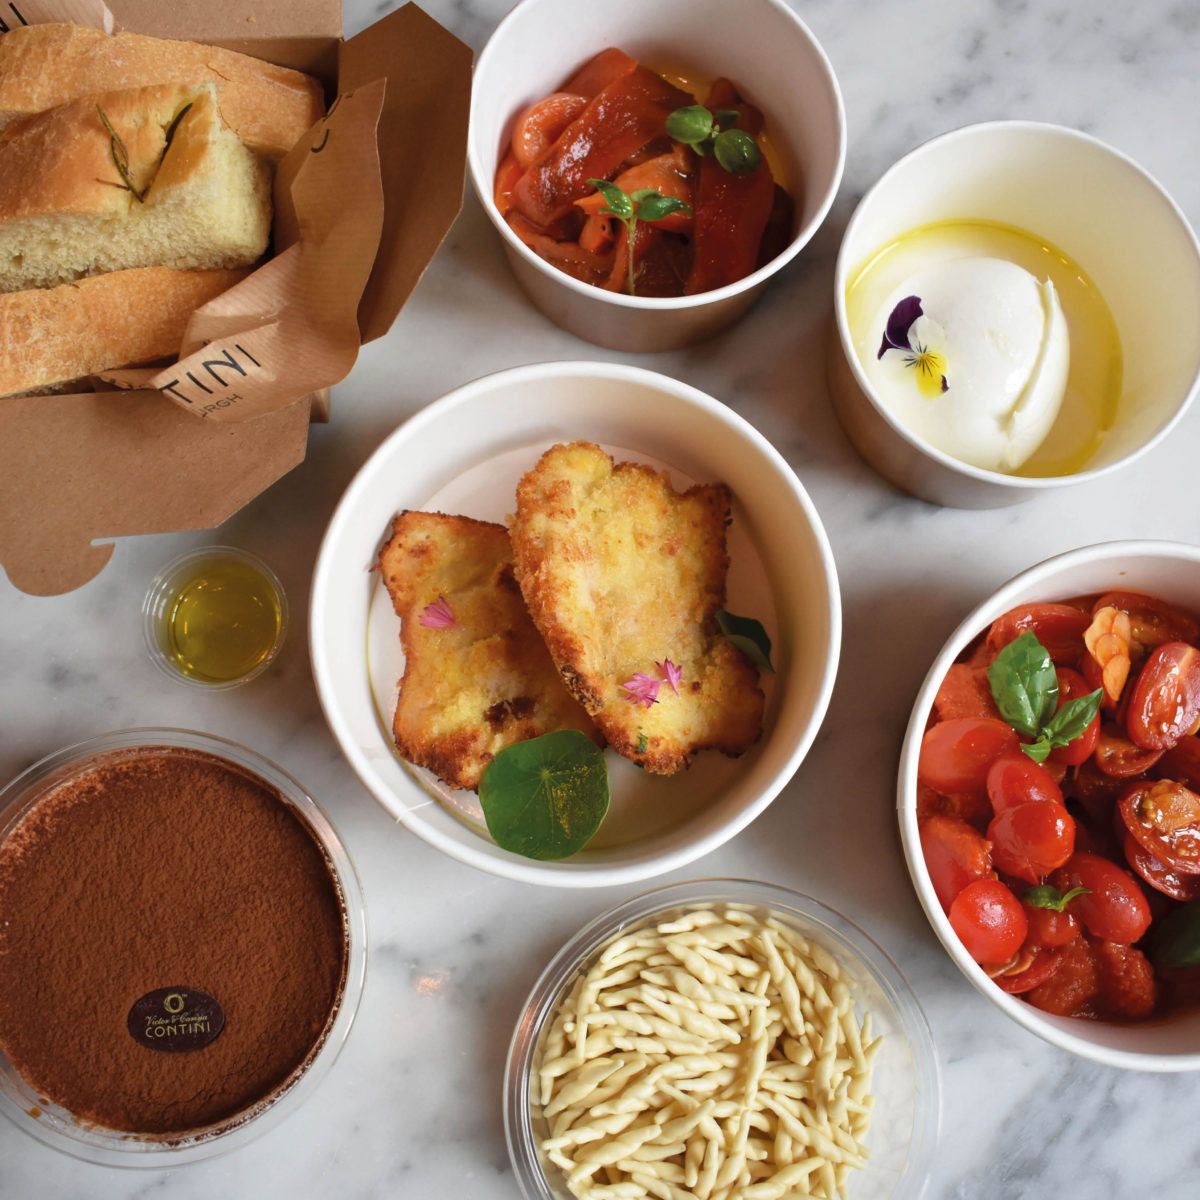 Premium quality Italian dishes ready to heat up at home